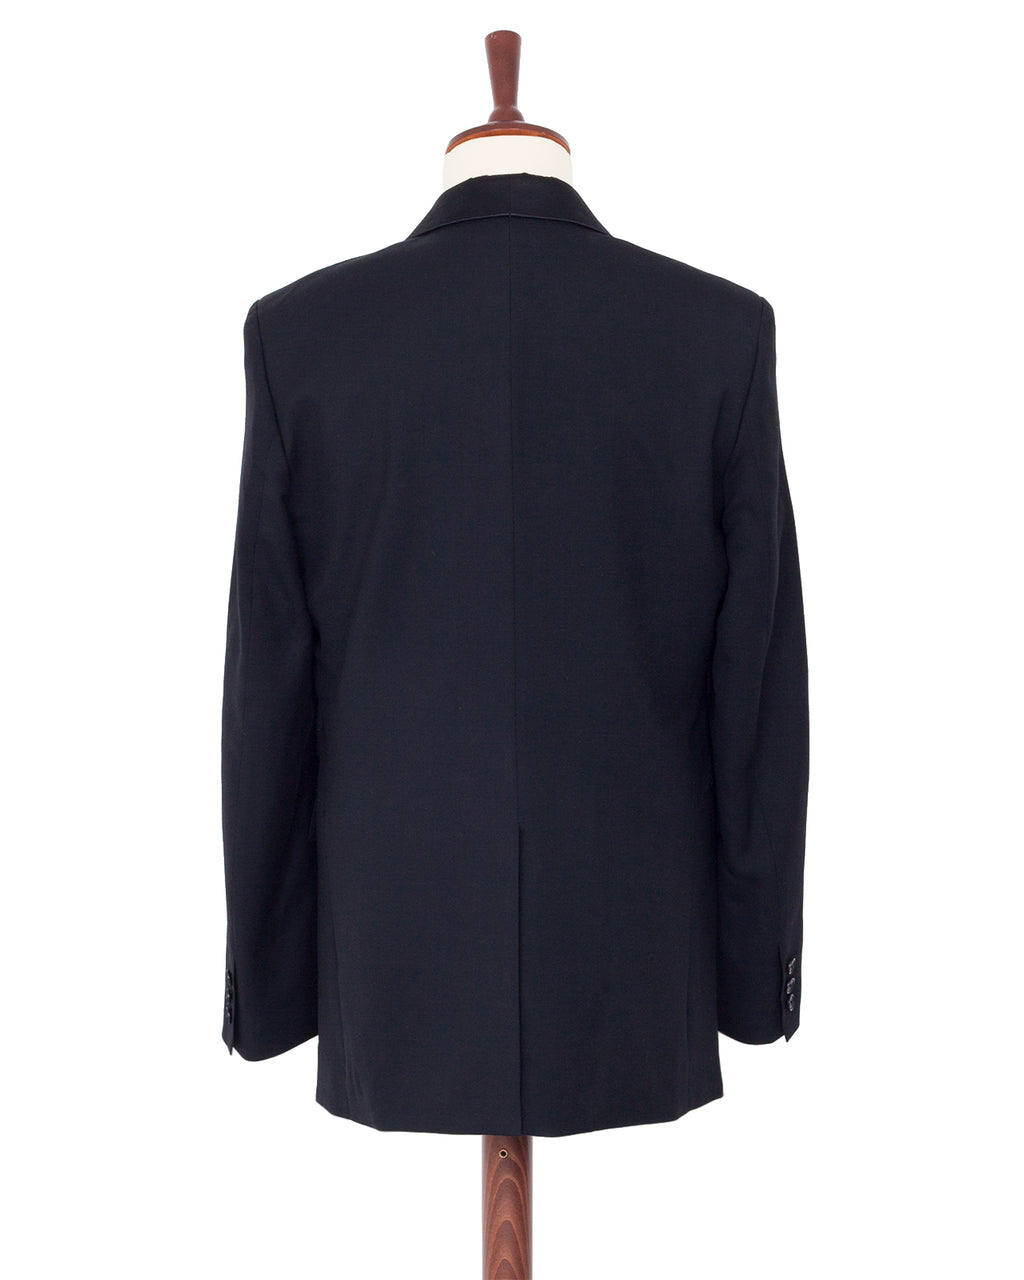 The Letters Shawl Collar Tuxedo Jacket, Serge Wool